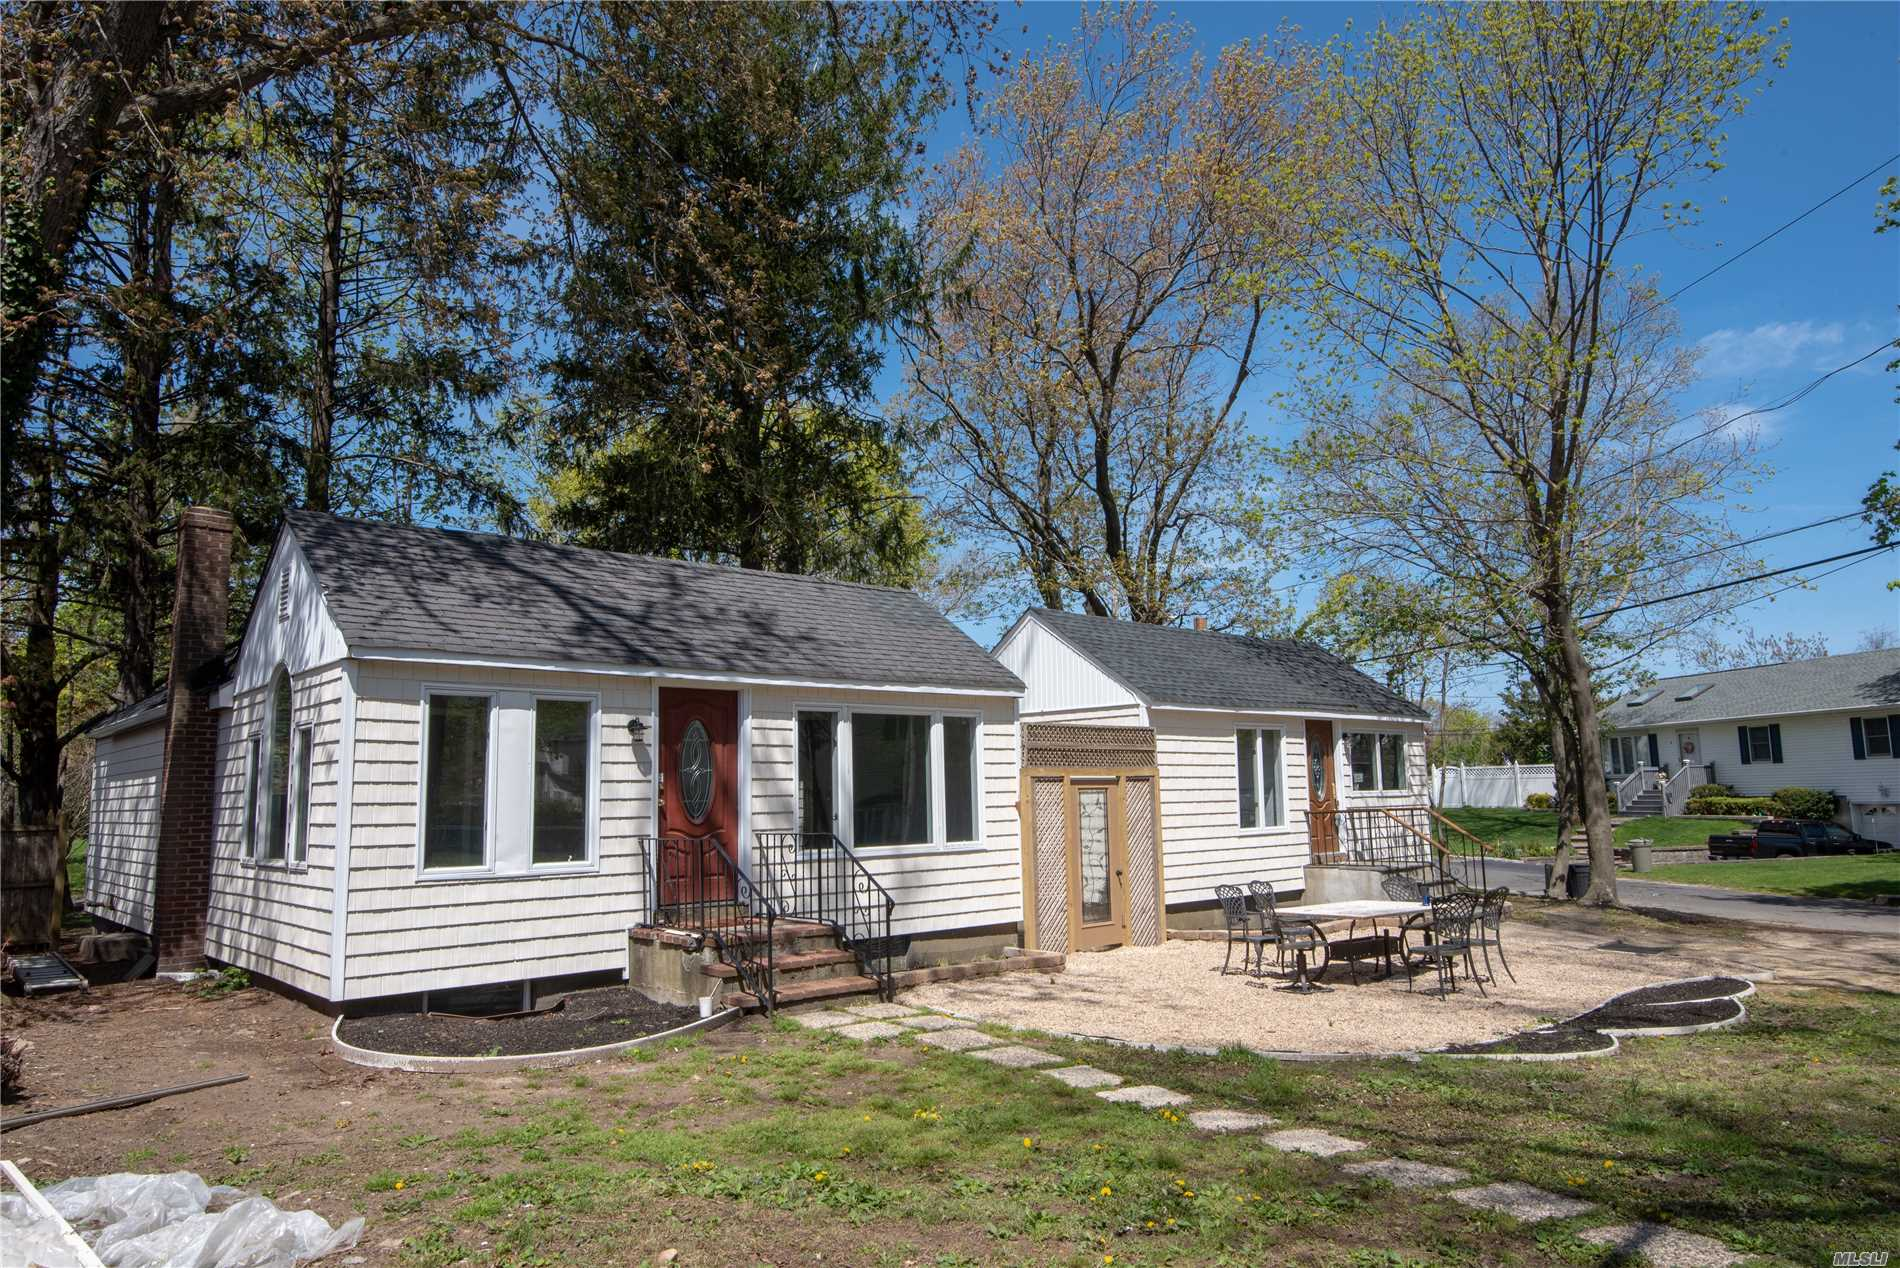 Legal Duplex:Perfect Summer Retreat or income producing Property just 2 blocks from beach ent.live in a completely renovated 3 bed 1bth home w/new hardwd flrs, brand new Kit & bth, cathedral ceilings, 200 amp elec & than walk thru your courtyard to the identical home which is a perfect rental or place for Mom.Yard is large and level & has a detached 1.5 car gar.Other features; 6 yr triple ring cesspool, 2nd home is freshly painted w/new carpeting and ready to be rented !! 2 burners (8yrs & 4yrs),